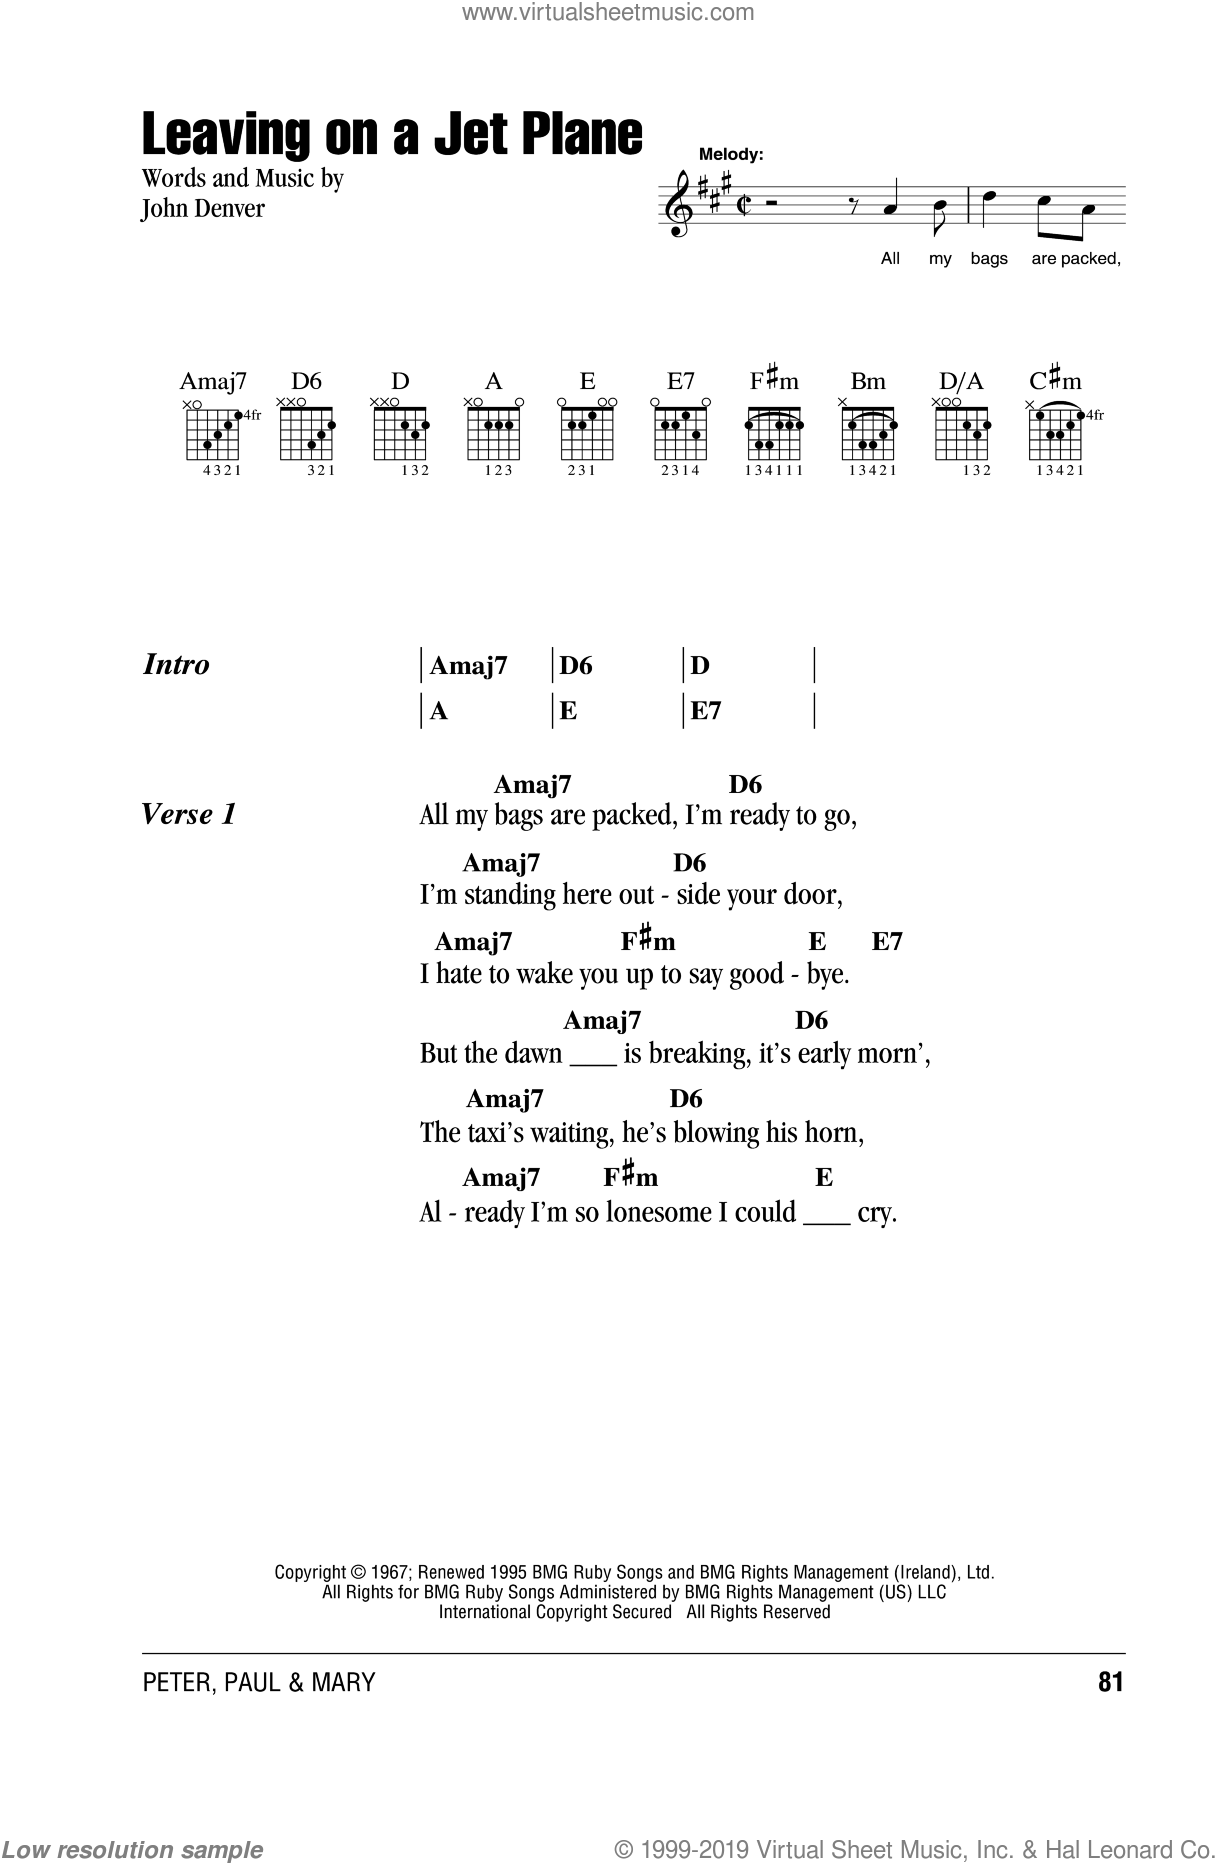 Leaving On A Jet Plane sheet music for guitar (chords, lyrics, melody) by Peter, Paul & Mary